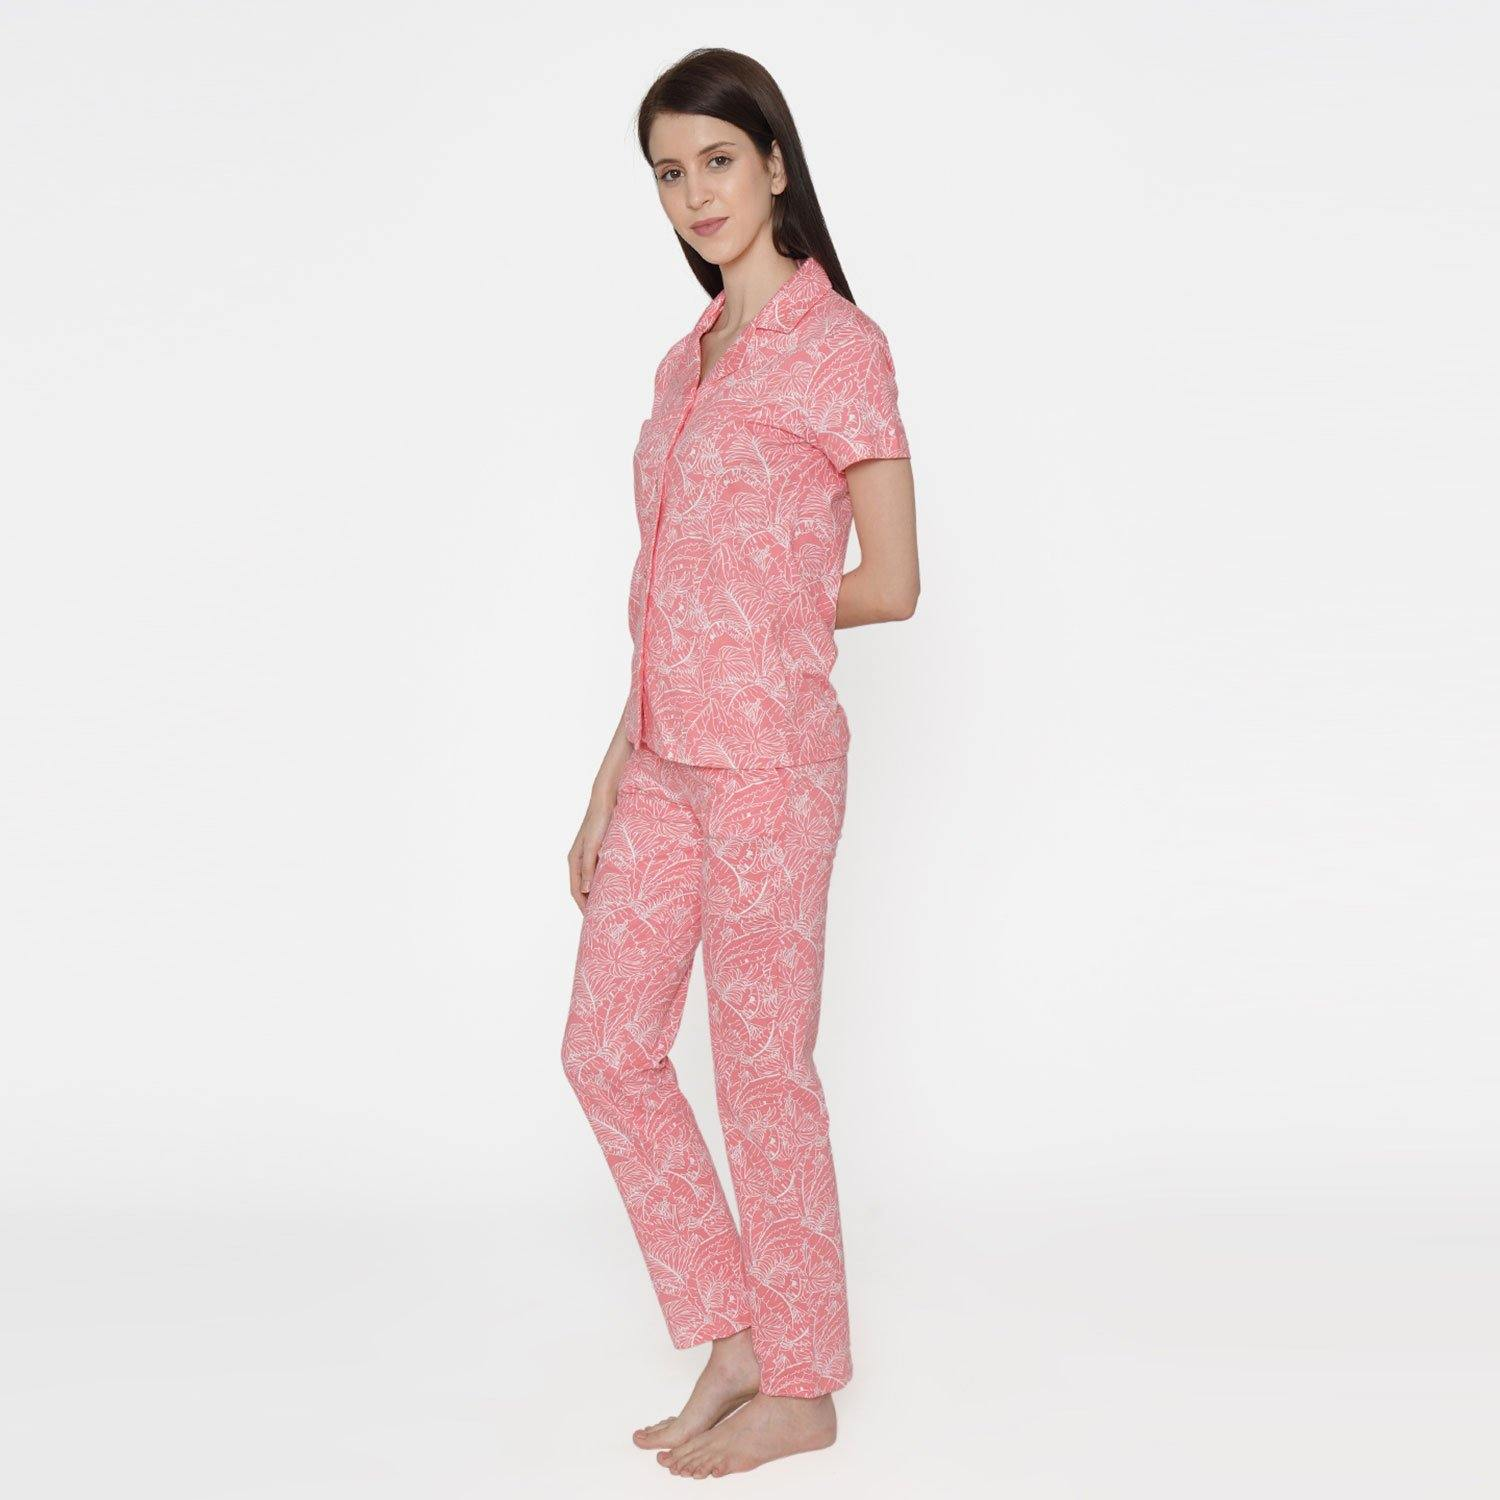 Regular Fit Casual Women's Lounge wear Set -Tee With Lower